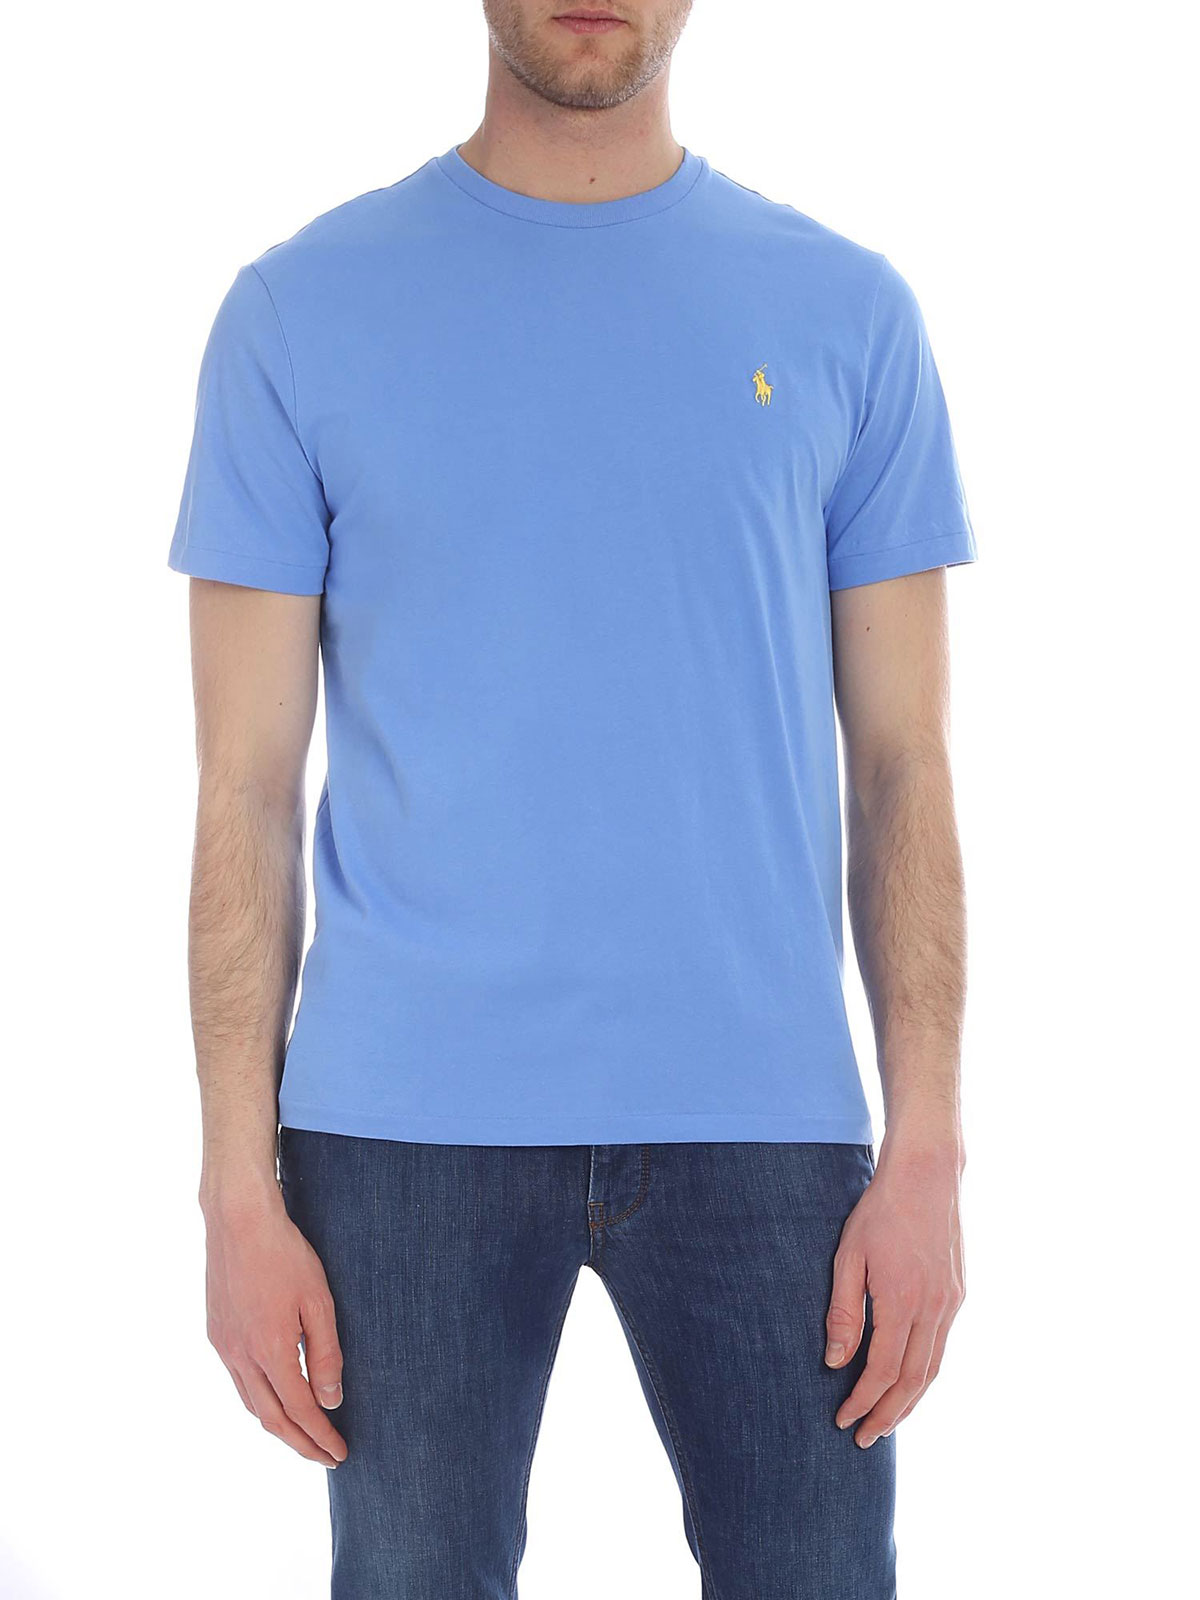 Picture of POLO RALPH LAUREN | Men's Custom Fit T-Shirt